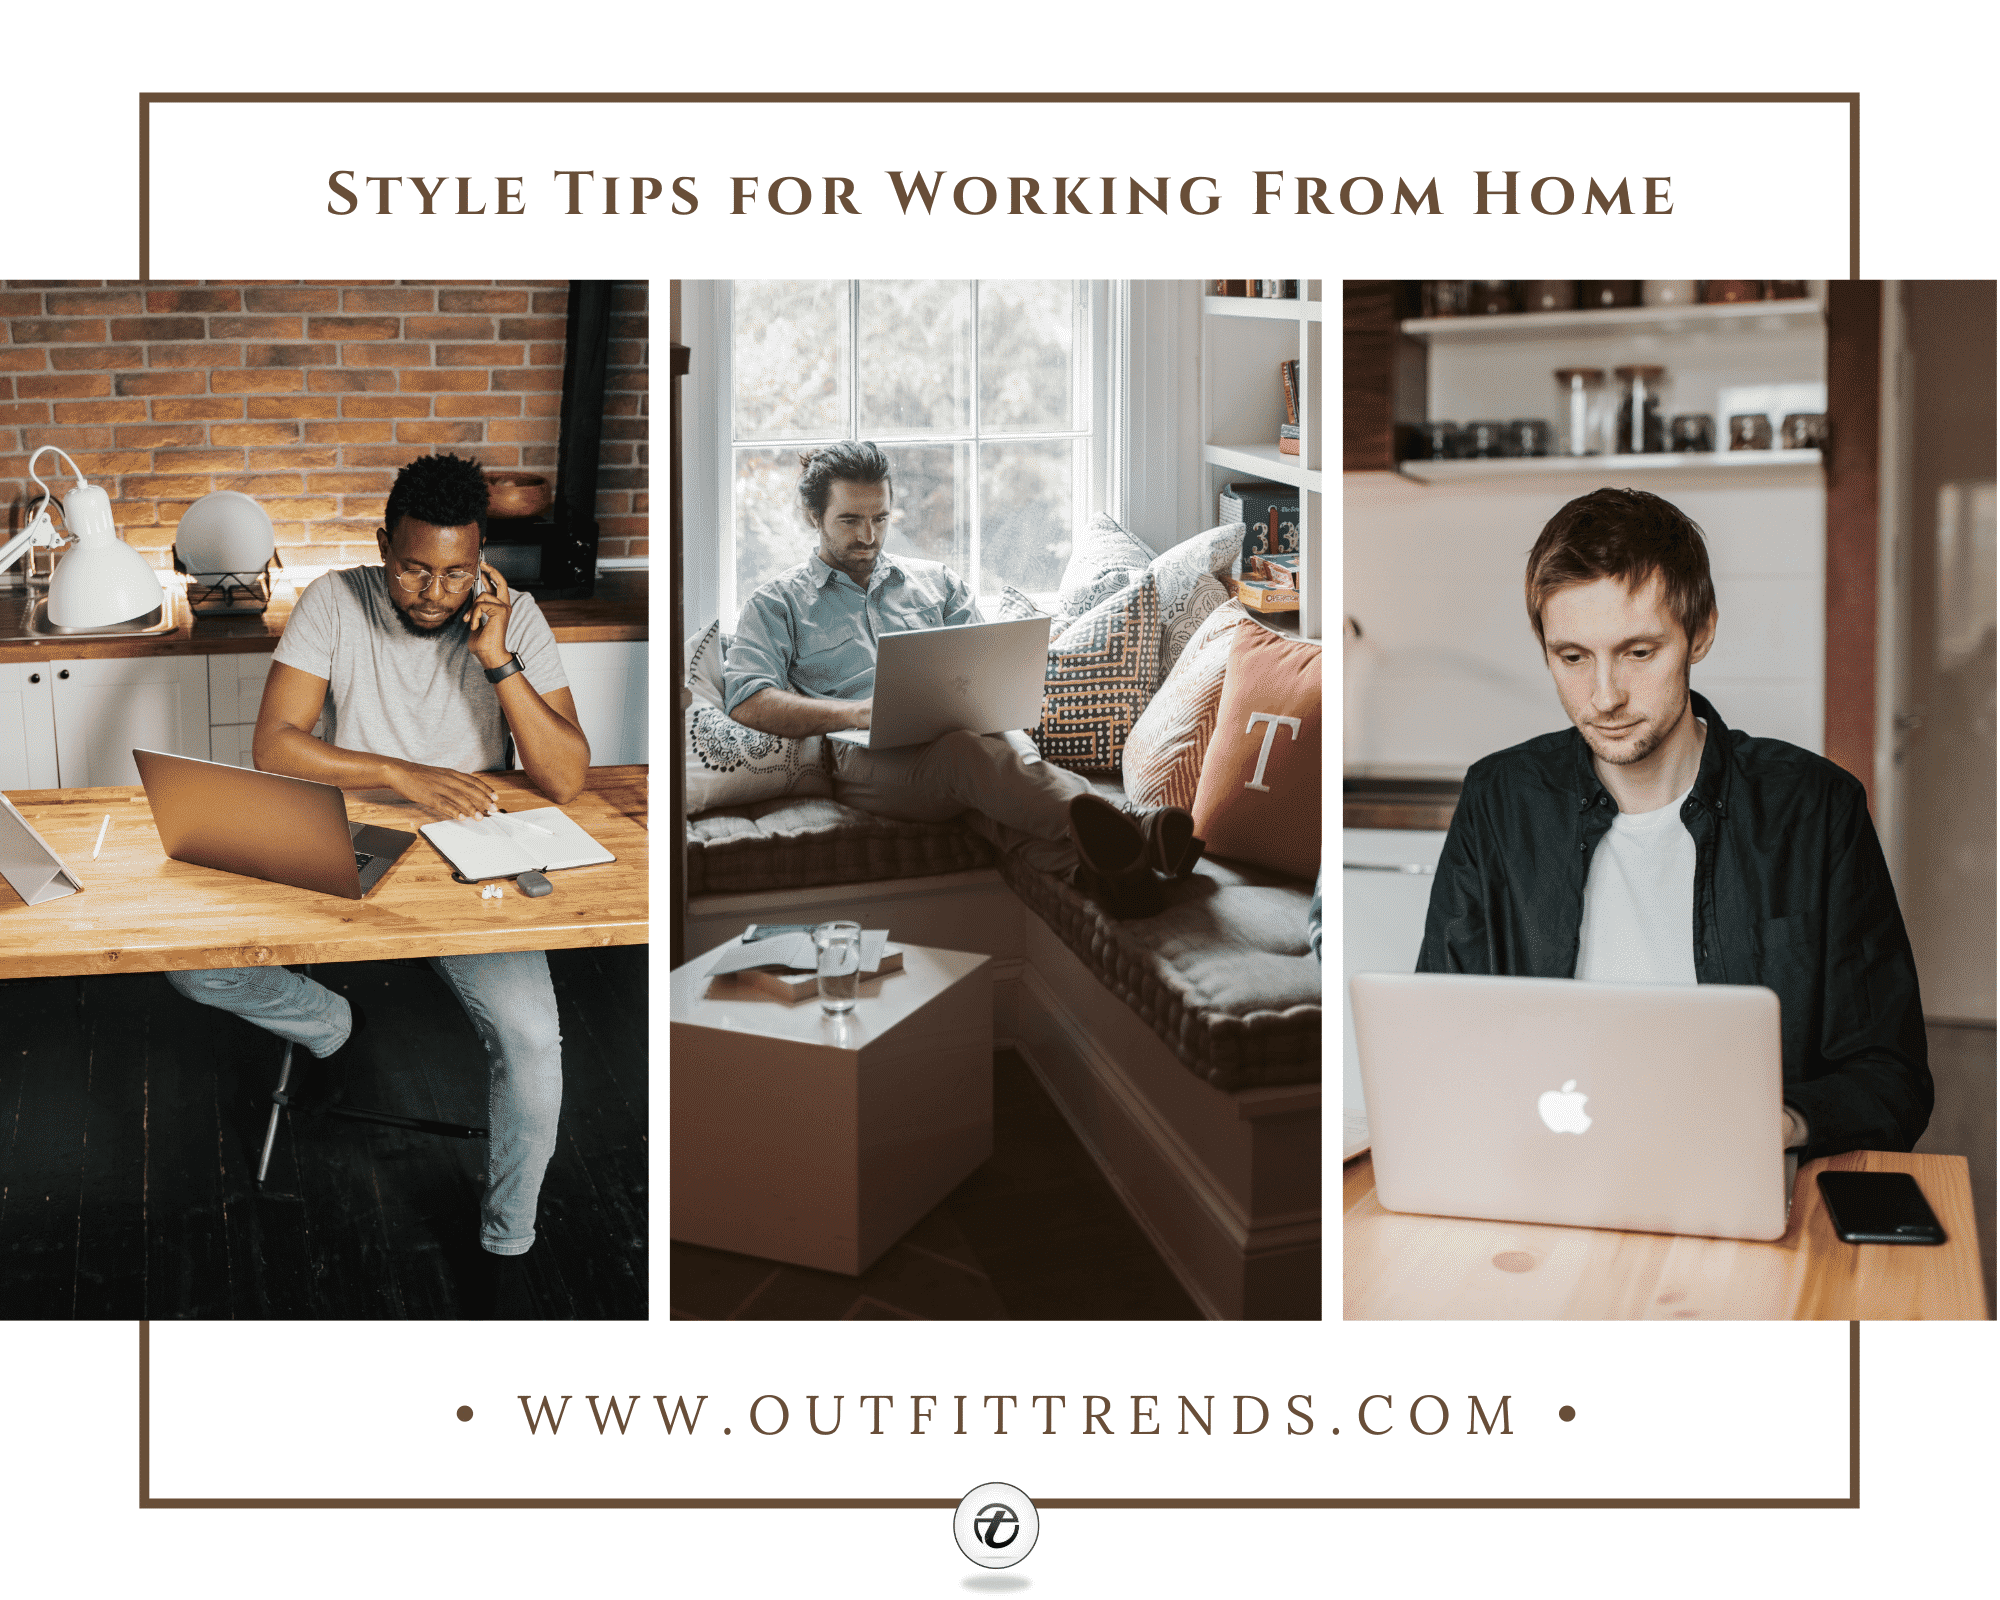 Men's WFH Style Guide| 35 Best Casual Work From Home Outfits